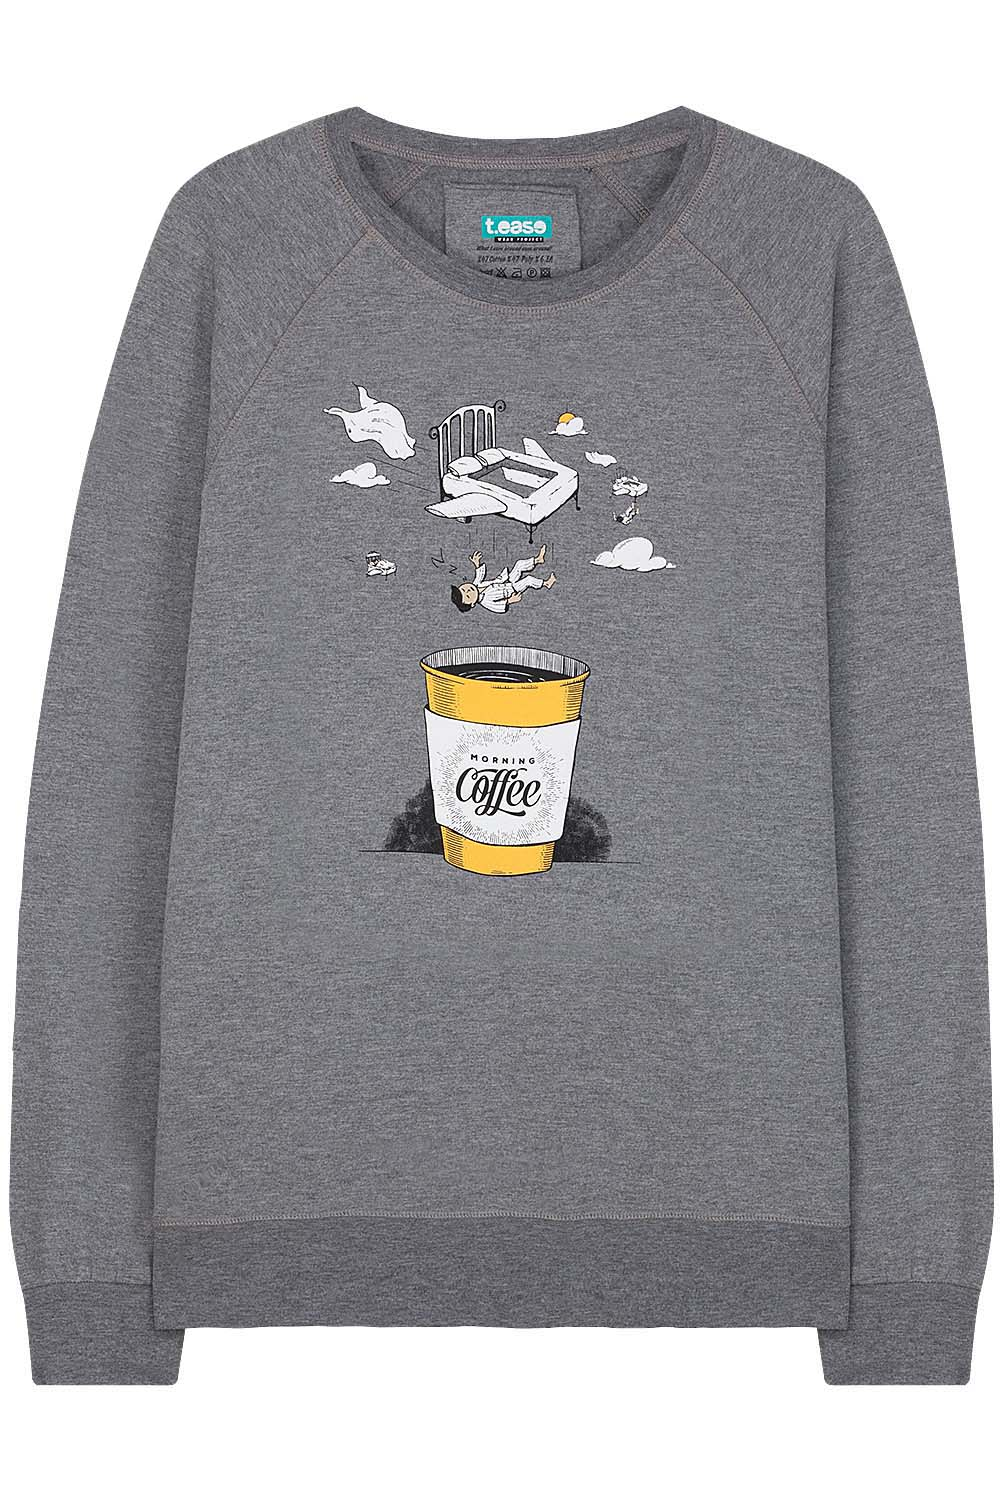 Morning Coffee Sweatshirt